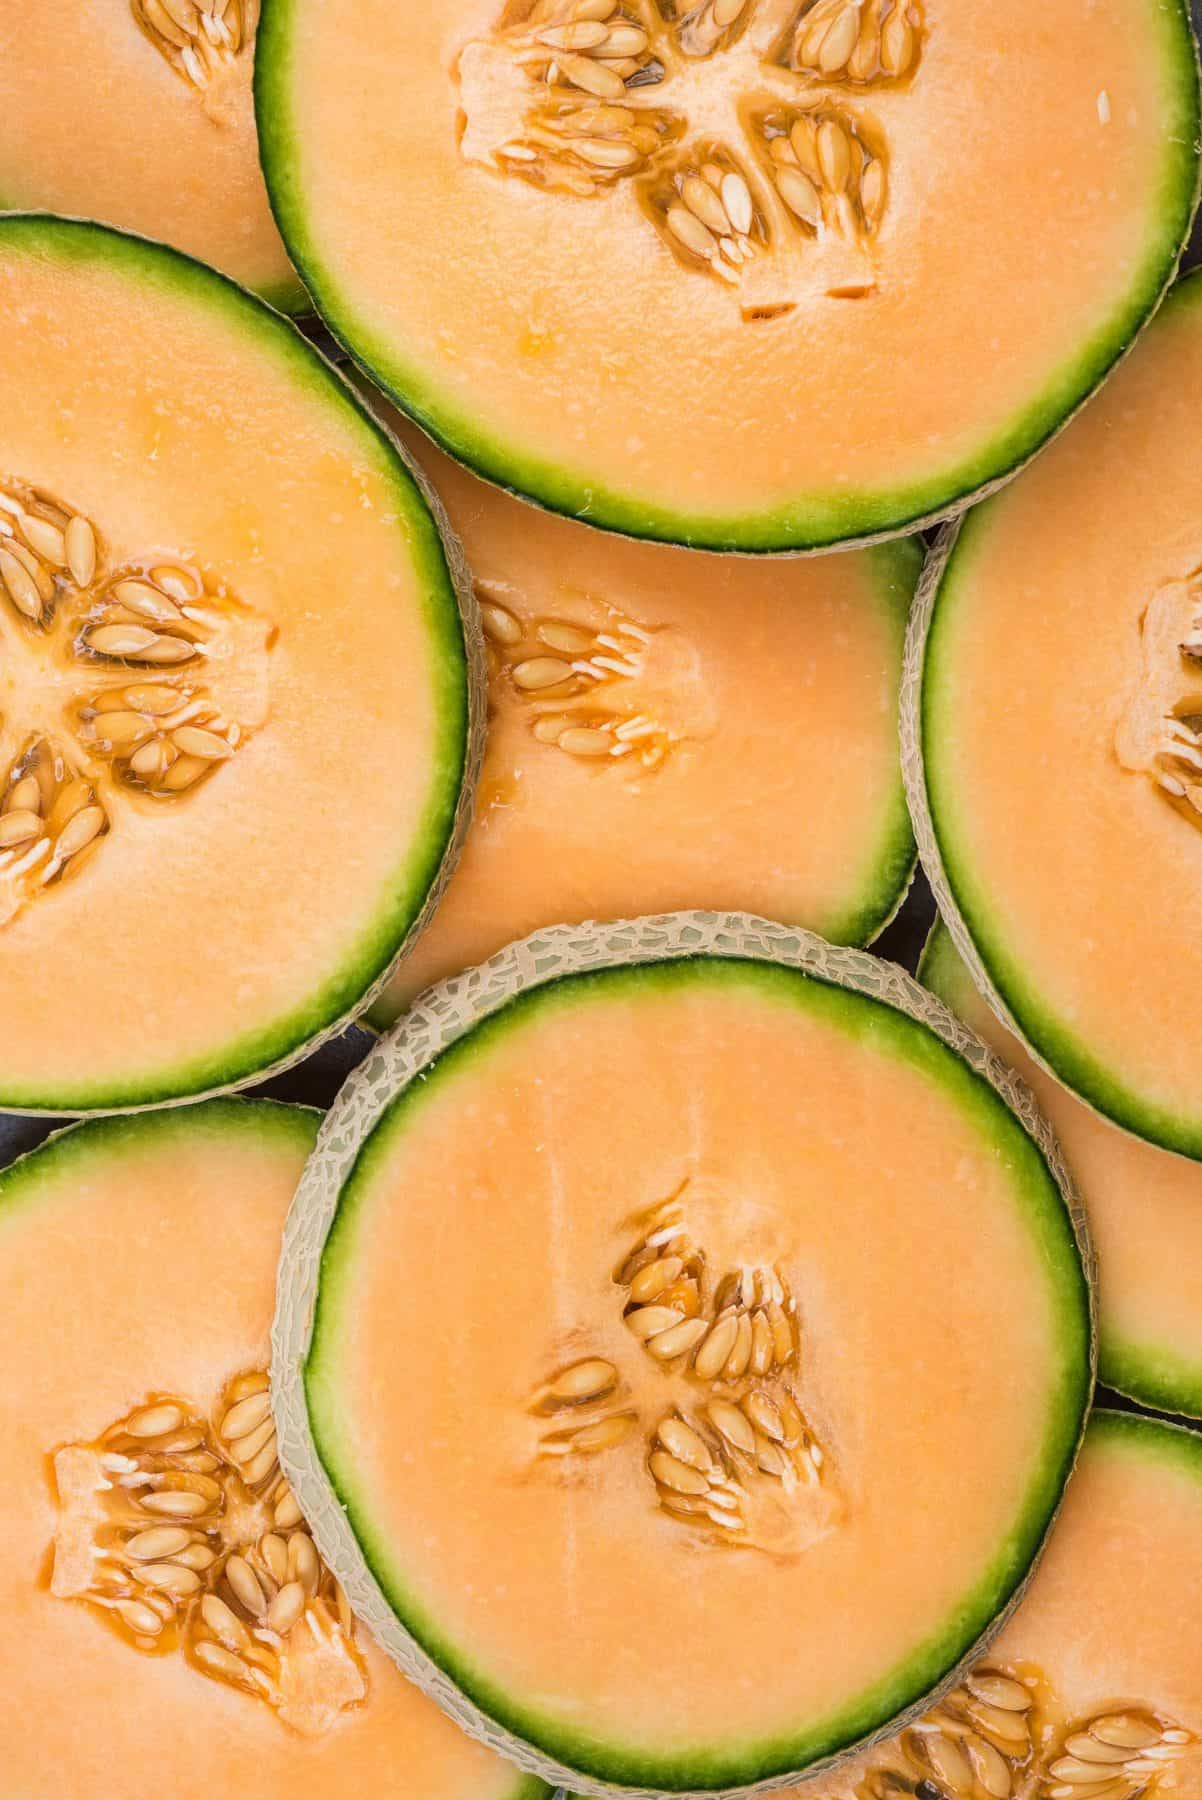 Overhead of full circle cantaloupe slices with their seeds stacked in two layers.